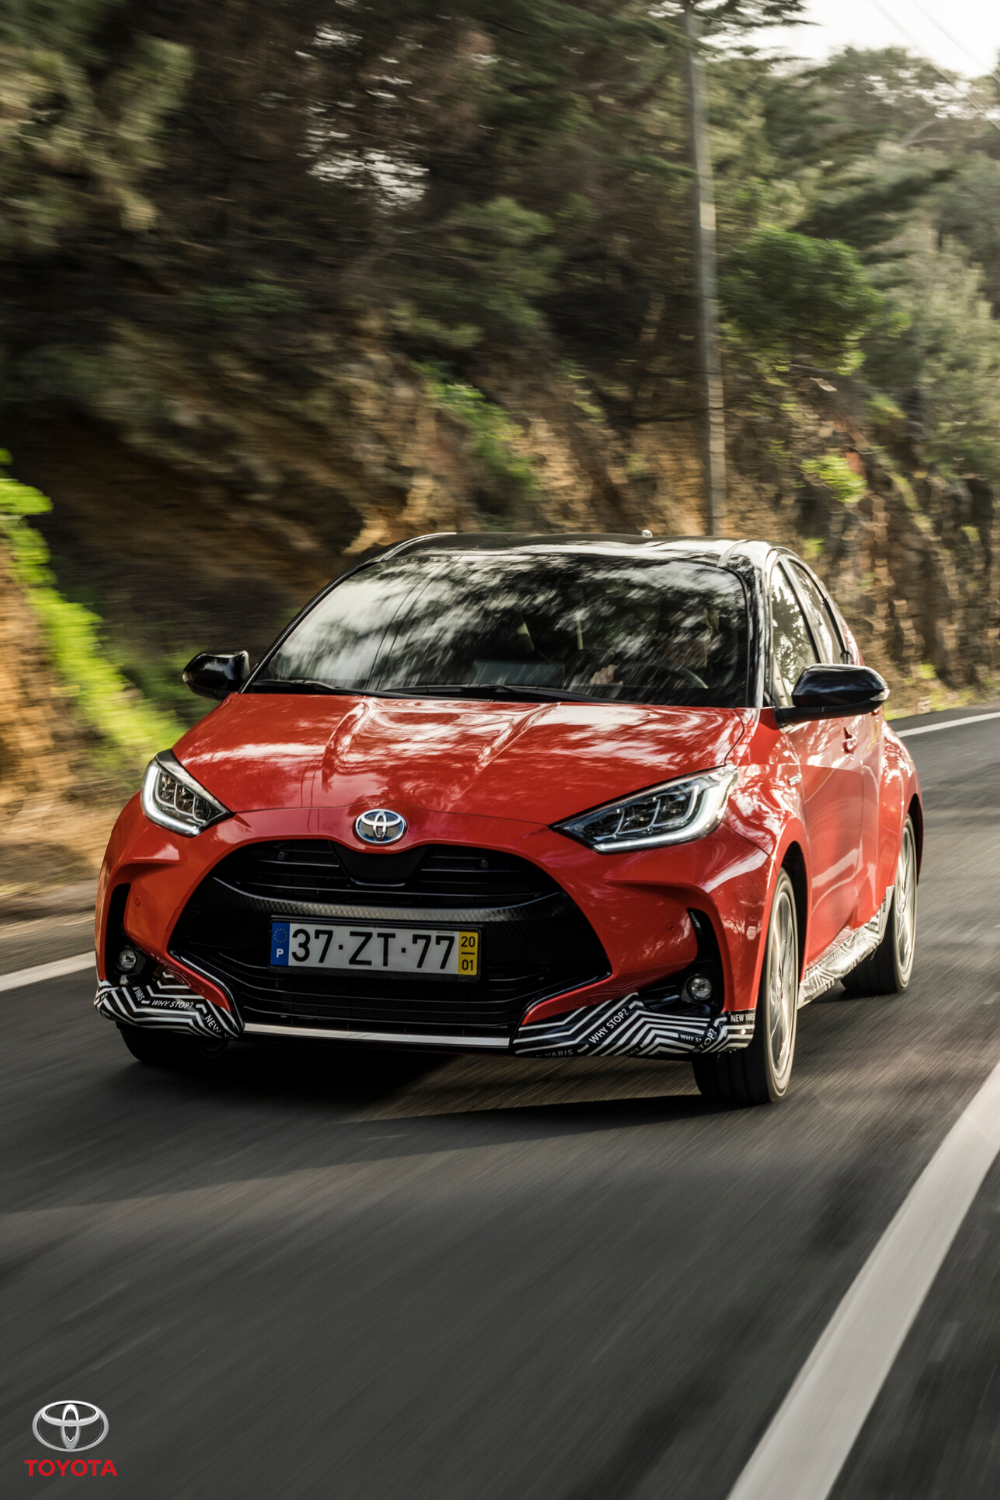 Packed full of technology, the all-new Toyota Yaris is our safest Yaris yet with advanced active and passive safety systems. Click to find out more. #Toyota #ToyotaYaris #SmallCar #CompactCar #CityLiving #HybridCar #NewCars